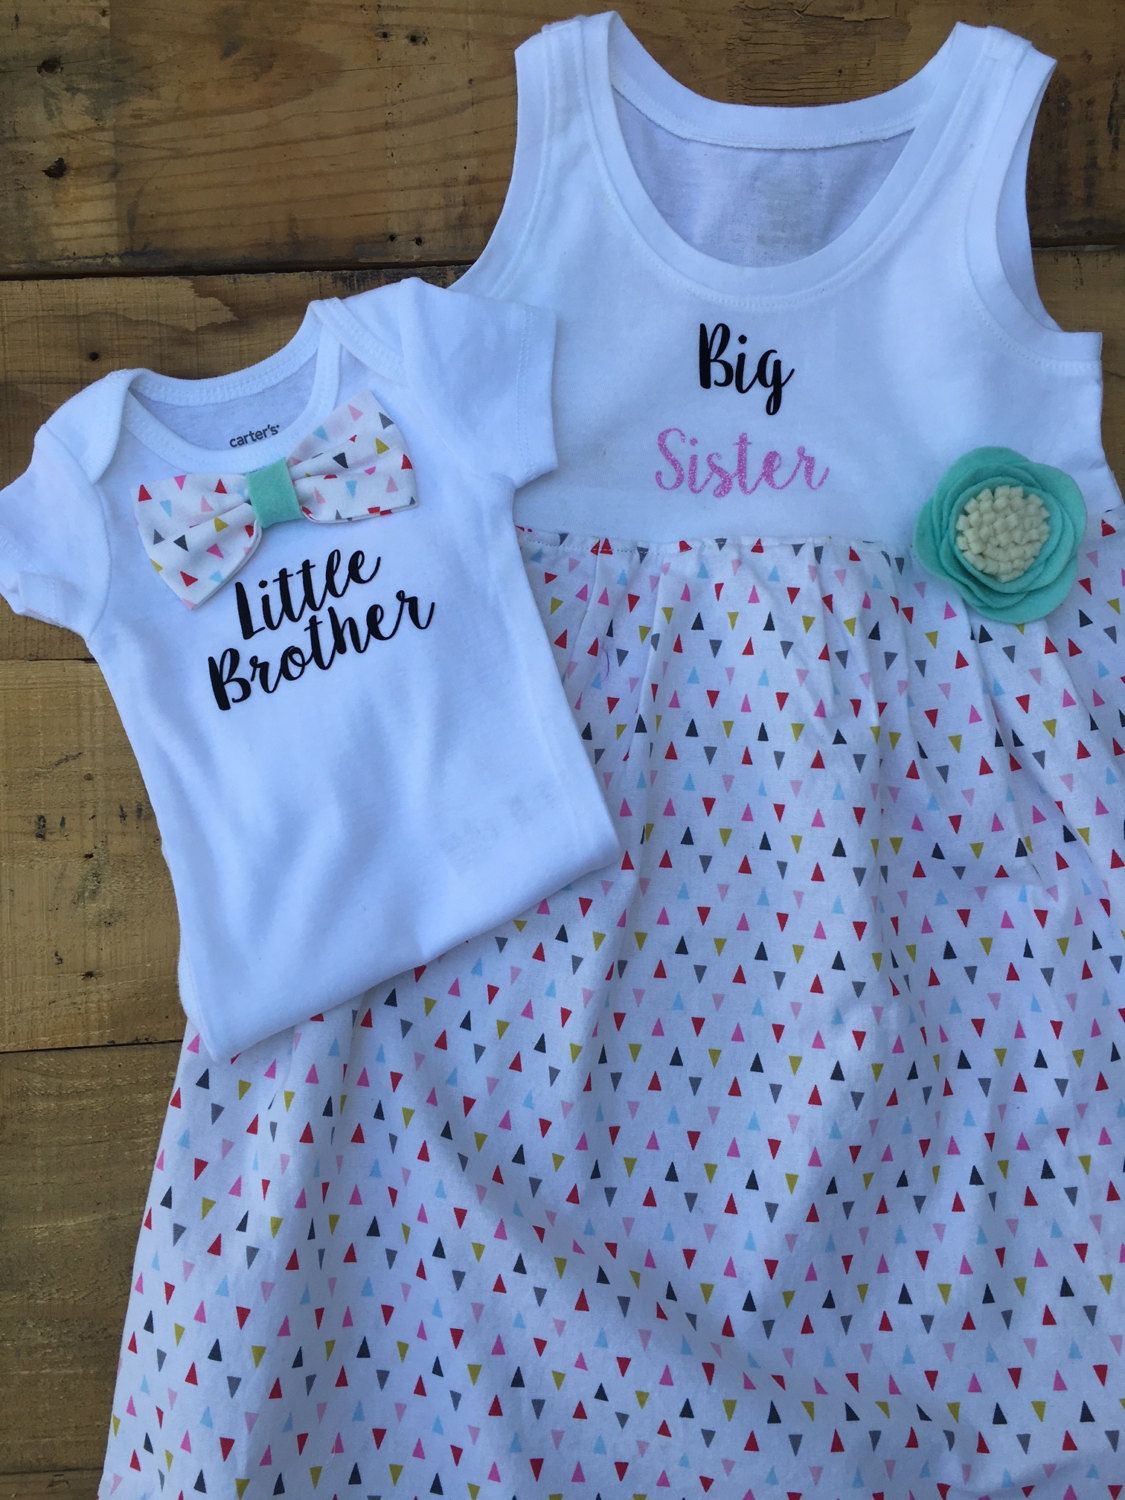 5f1be30e139c9 Big Sister Little Brother Matching Outfits | Kids | Big sister kit ...